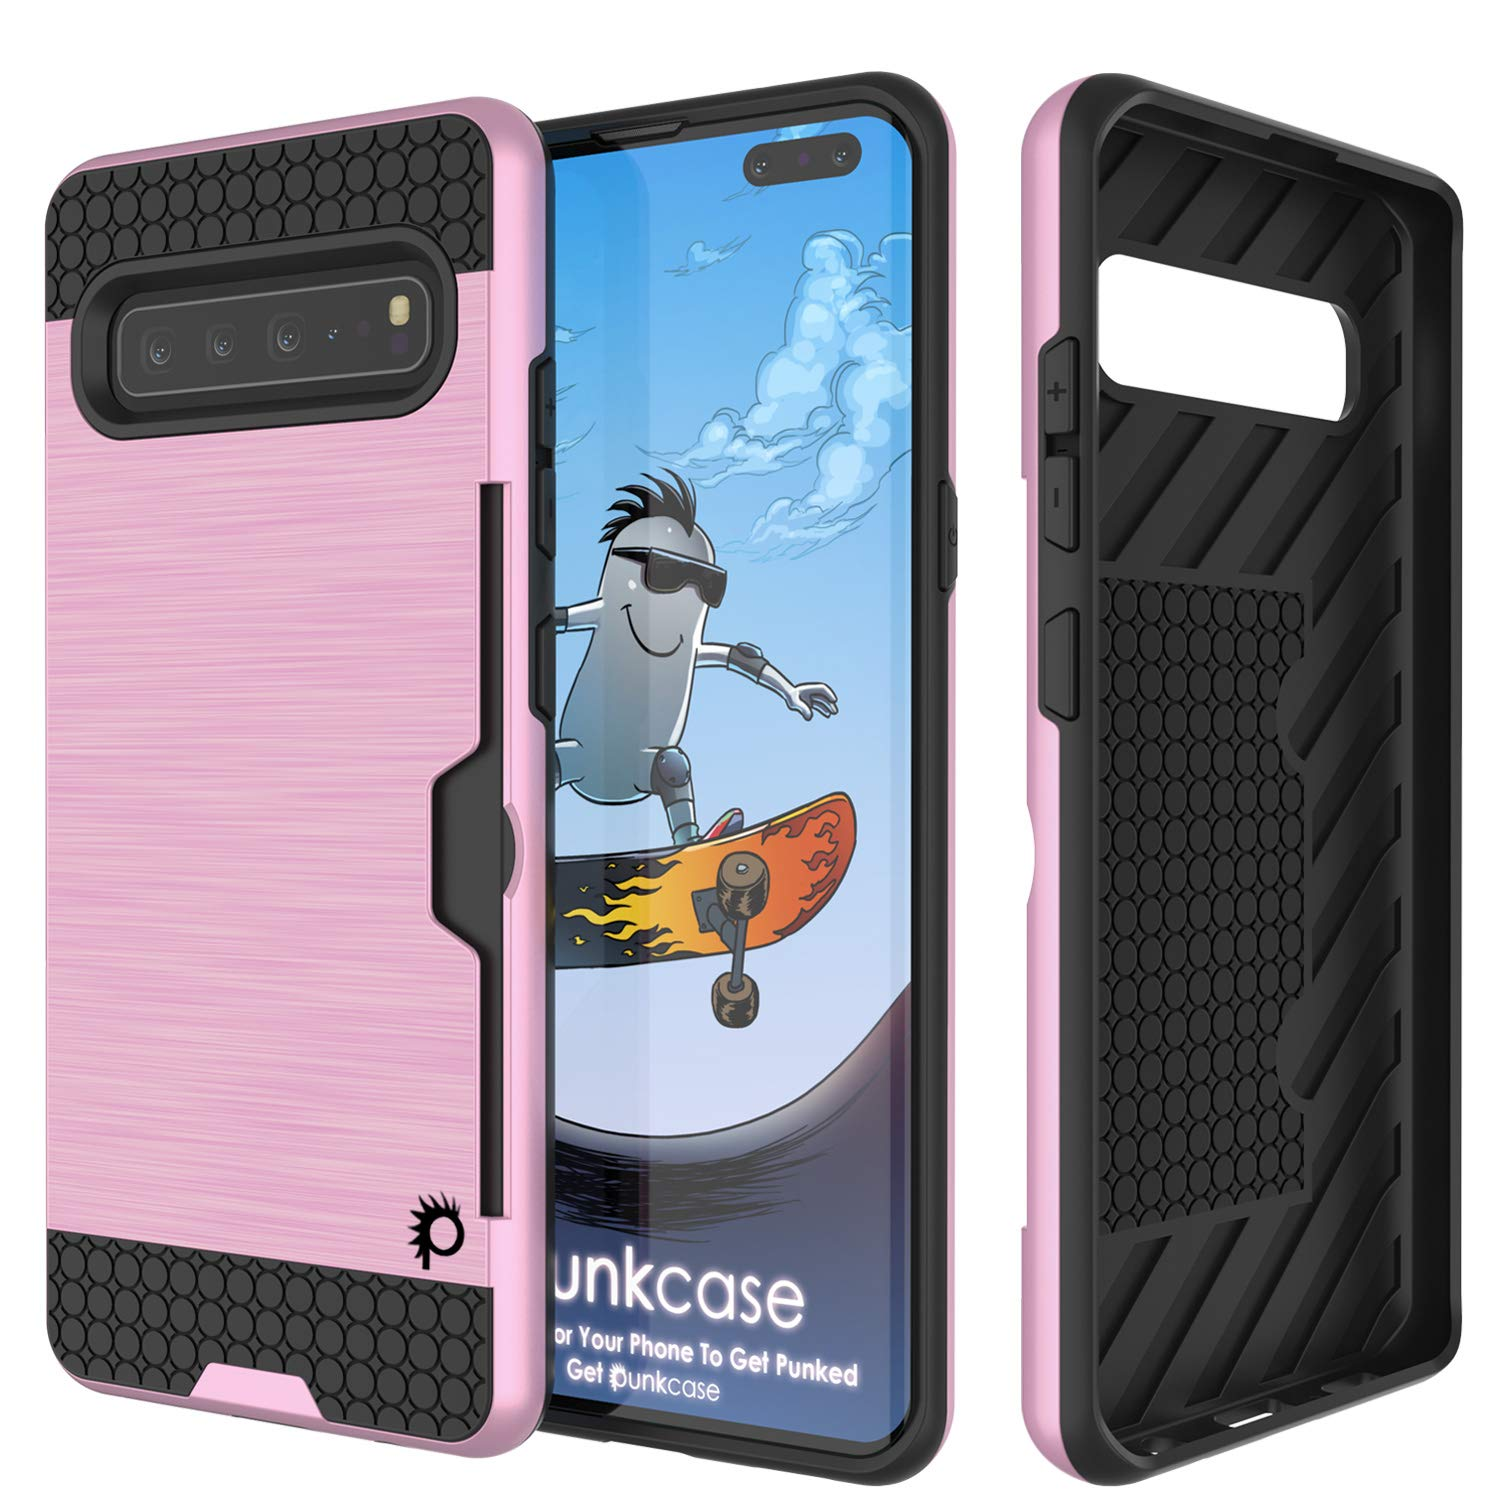 Galaxy S10 5G  Case, PUNKcase [SLOT Series] [Slim Fit] Dual-Layer Armor Cover w/Integrated Anti-Shock System, Credit Card Slot [Pink]